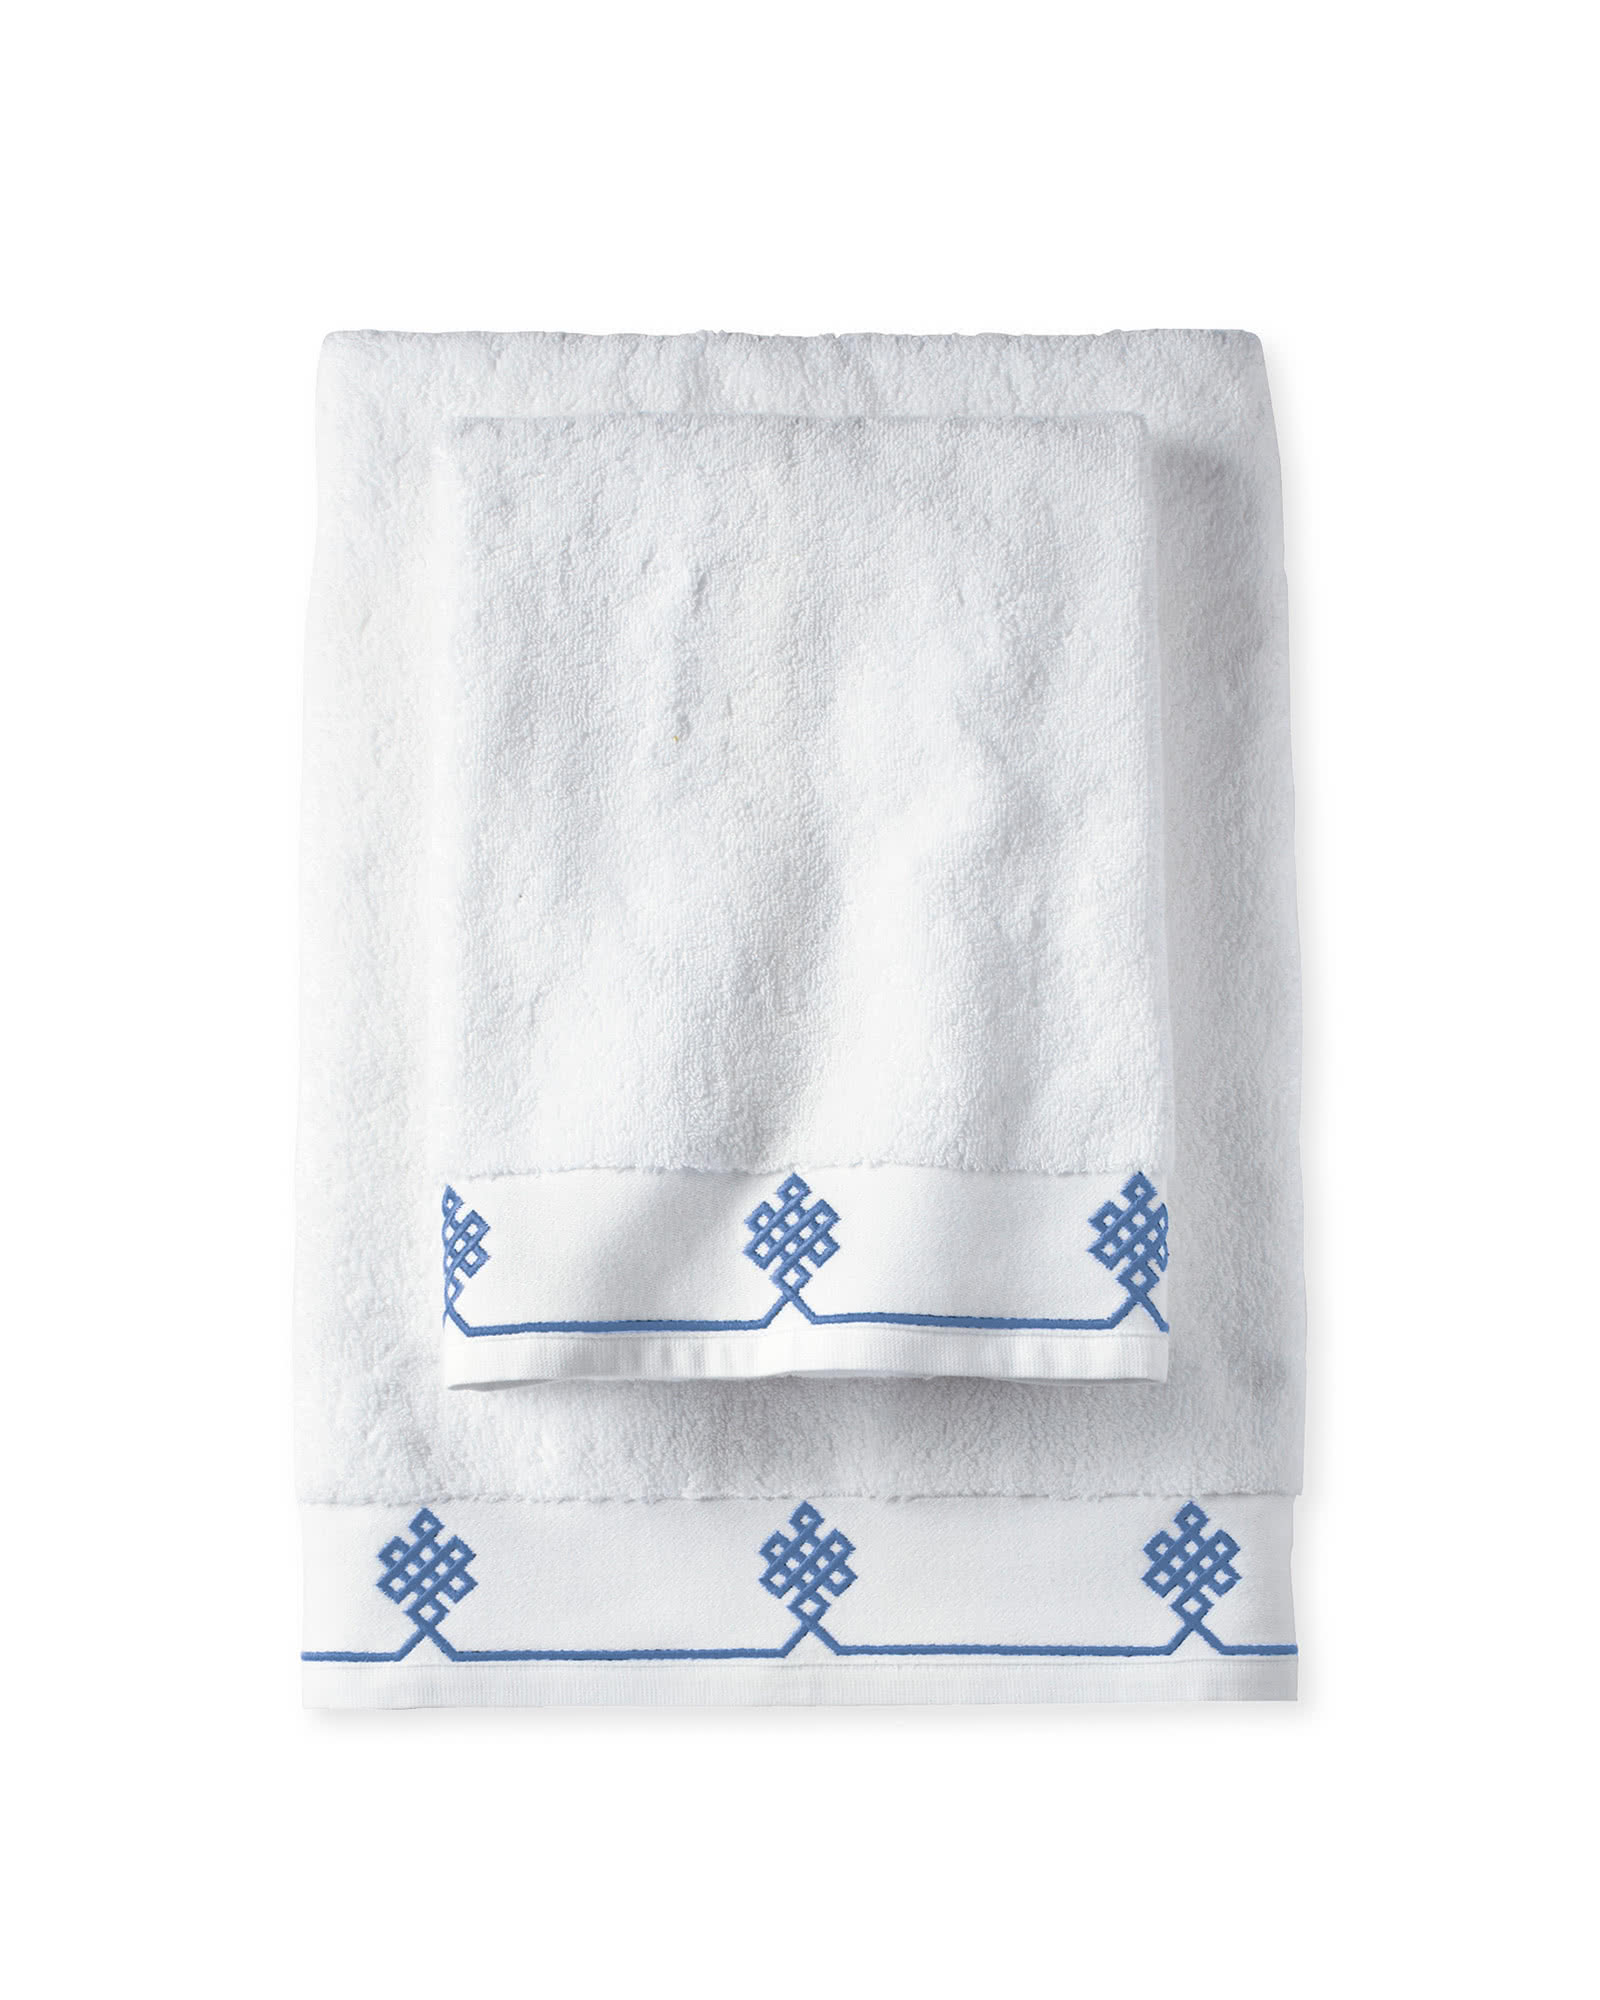 Gobi Bath Collection, French Blue